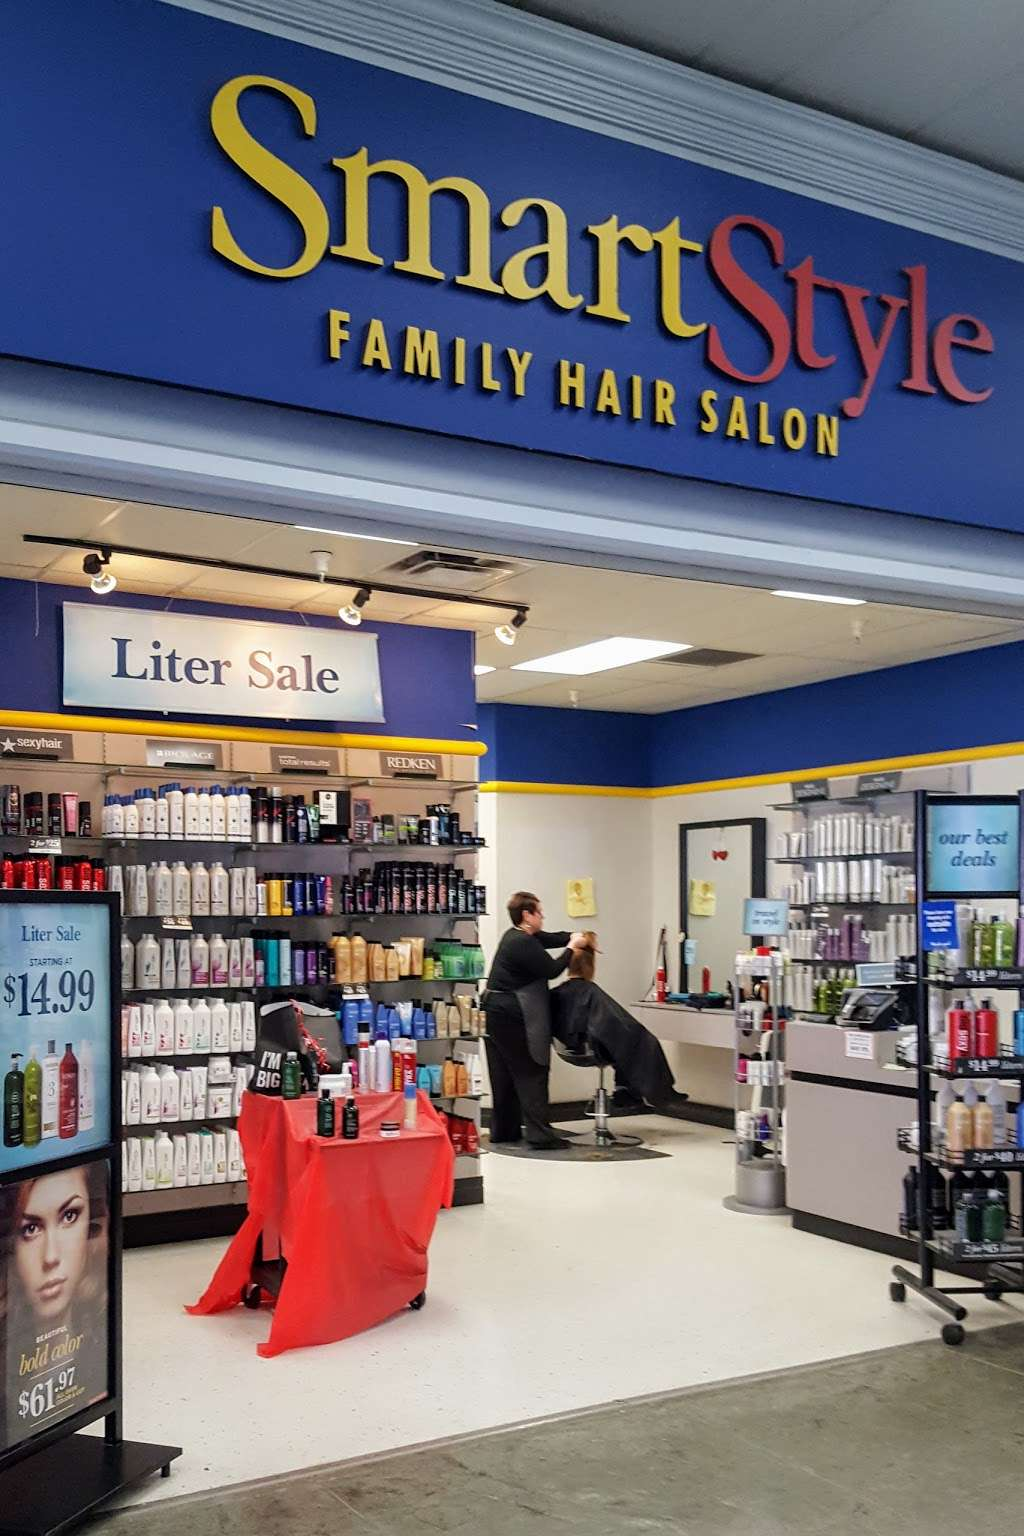 Smartstyle Hair Salon 220 Route 6 And 120 Located Inside Walmart 2064 Milford Pa 18337 Usa